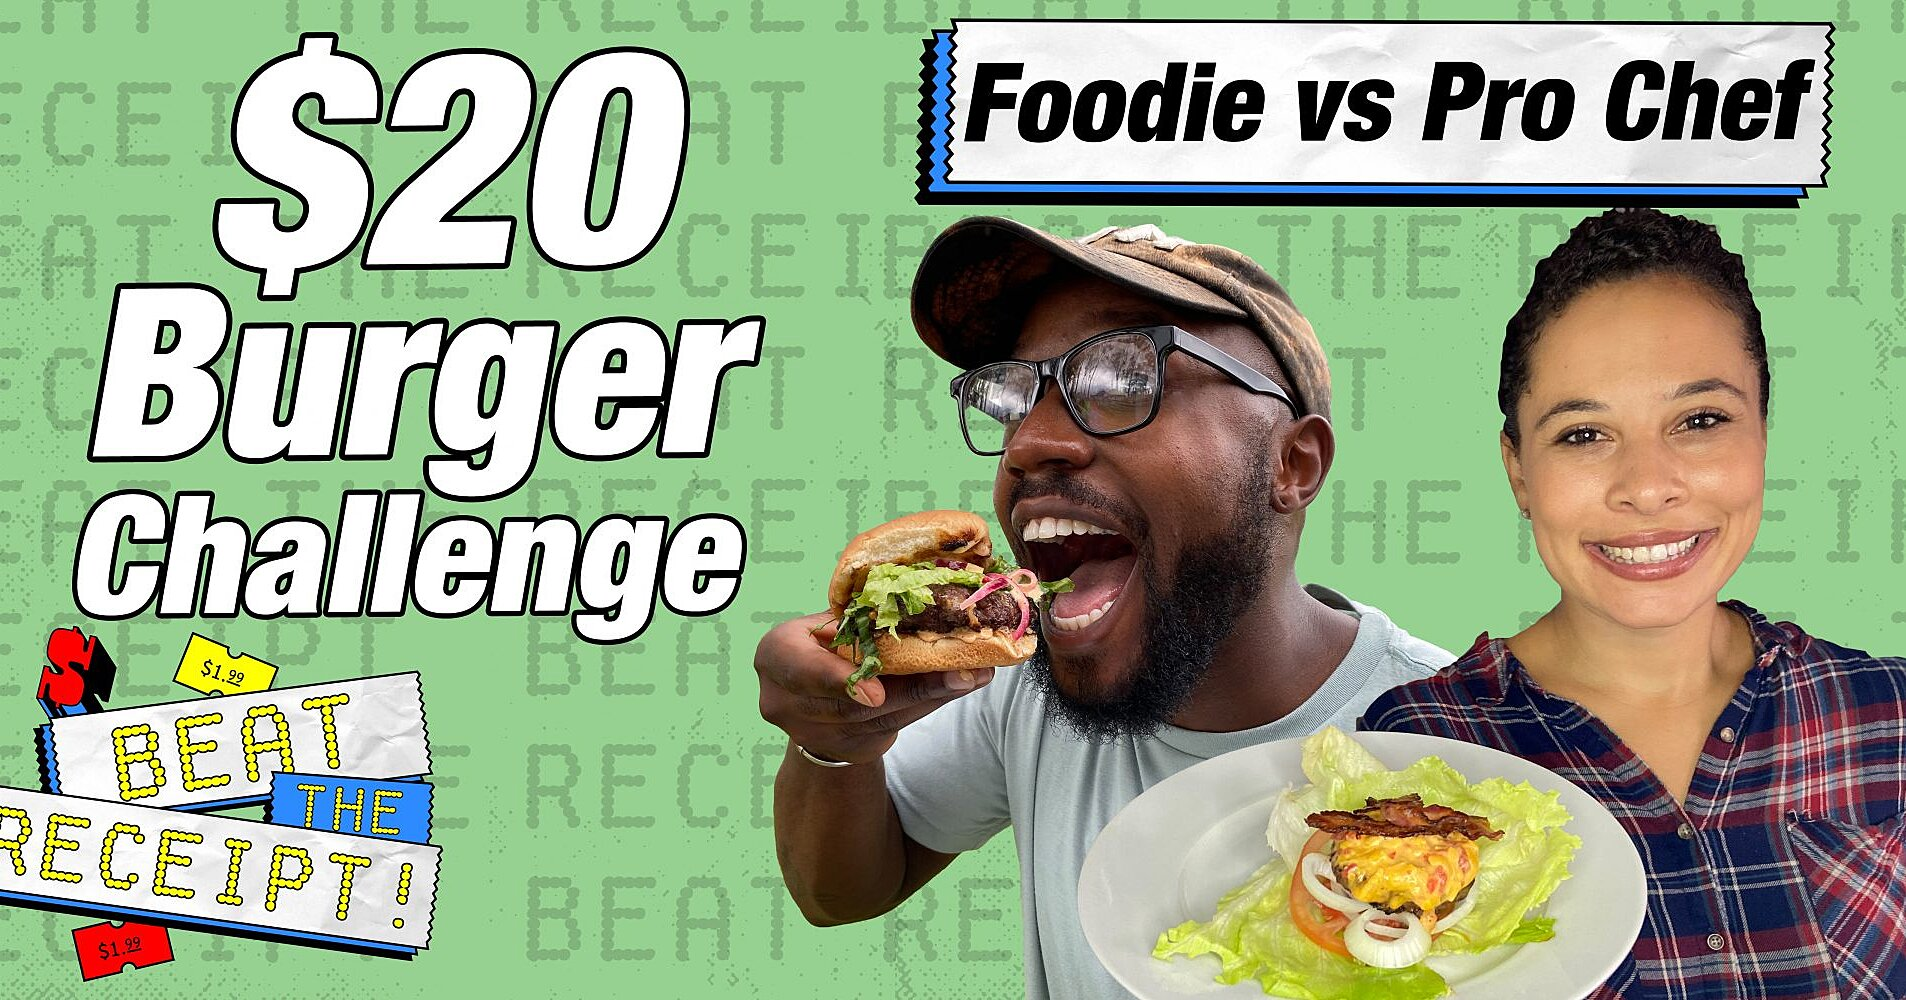 Watch: Pro Chef and Foodie Make Burgers for Two for Under $20